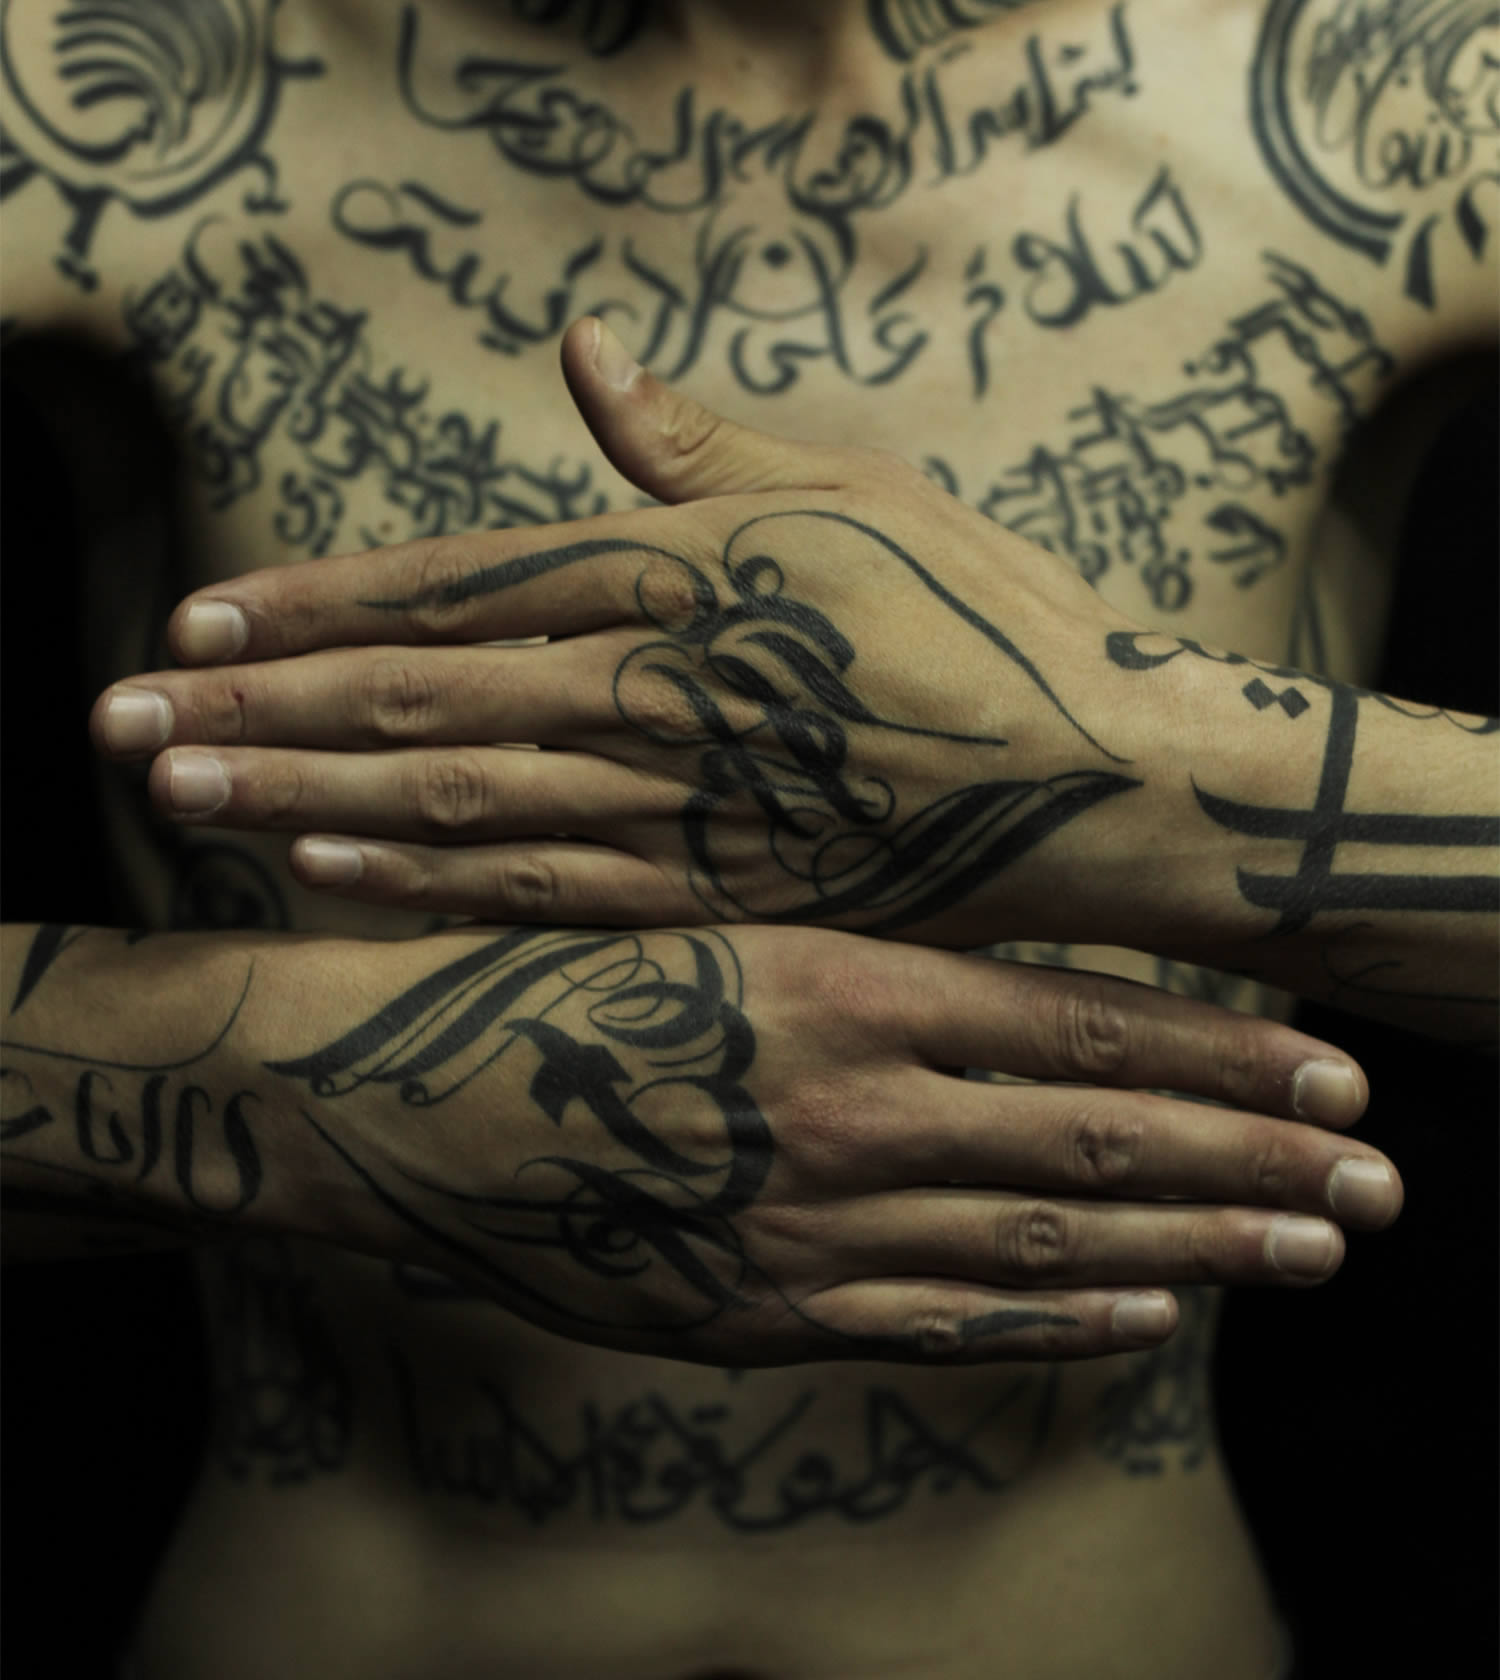 caligraphy tattoo on hands by sadhu le serbe